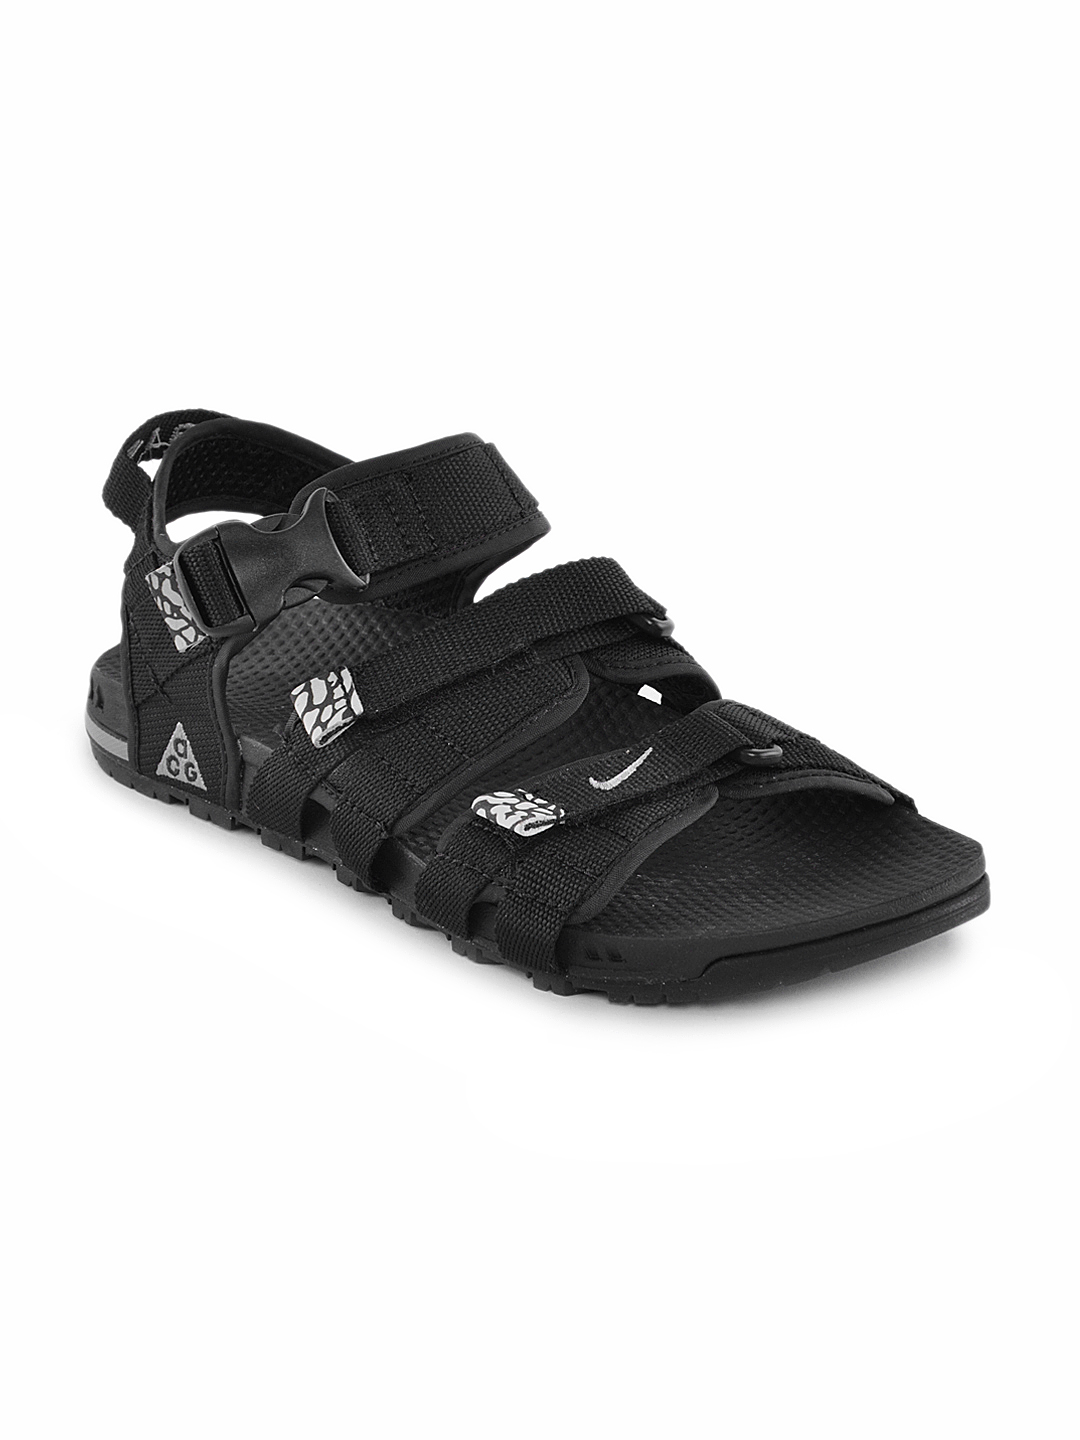 Nike Men Black Air Deschutz Sandals